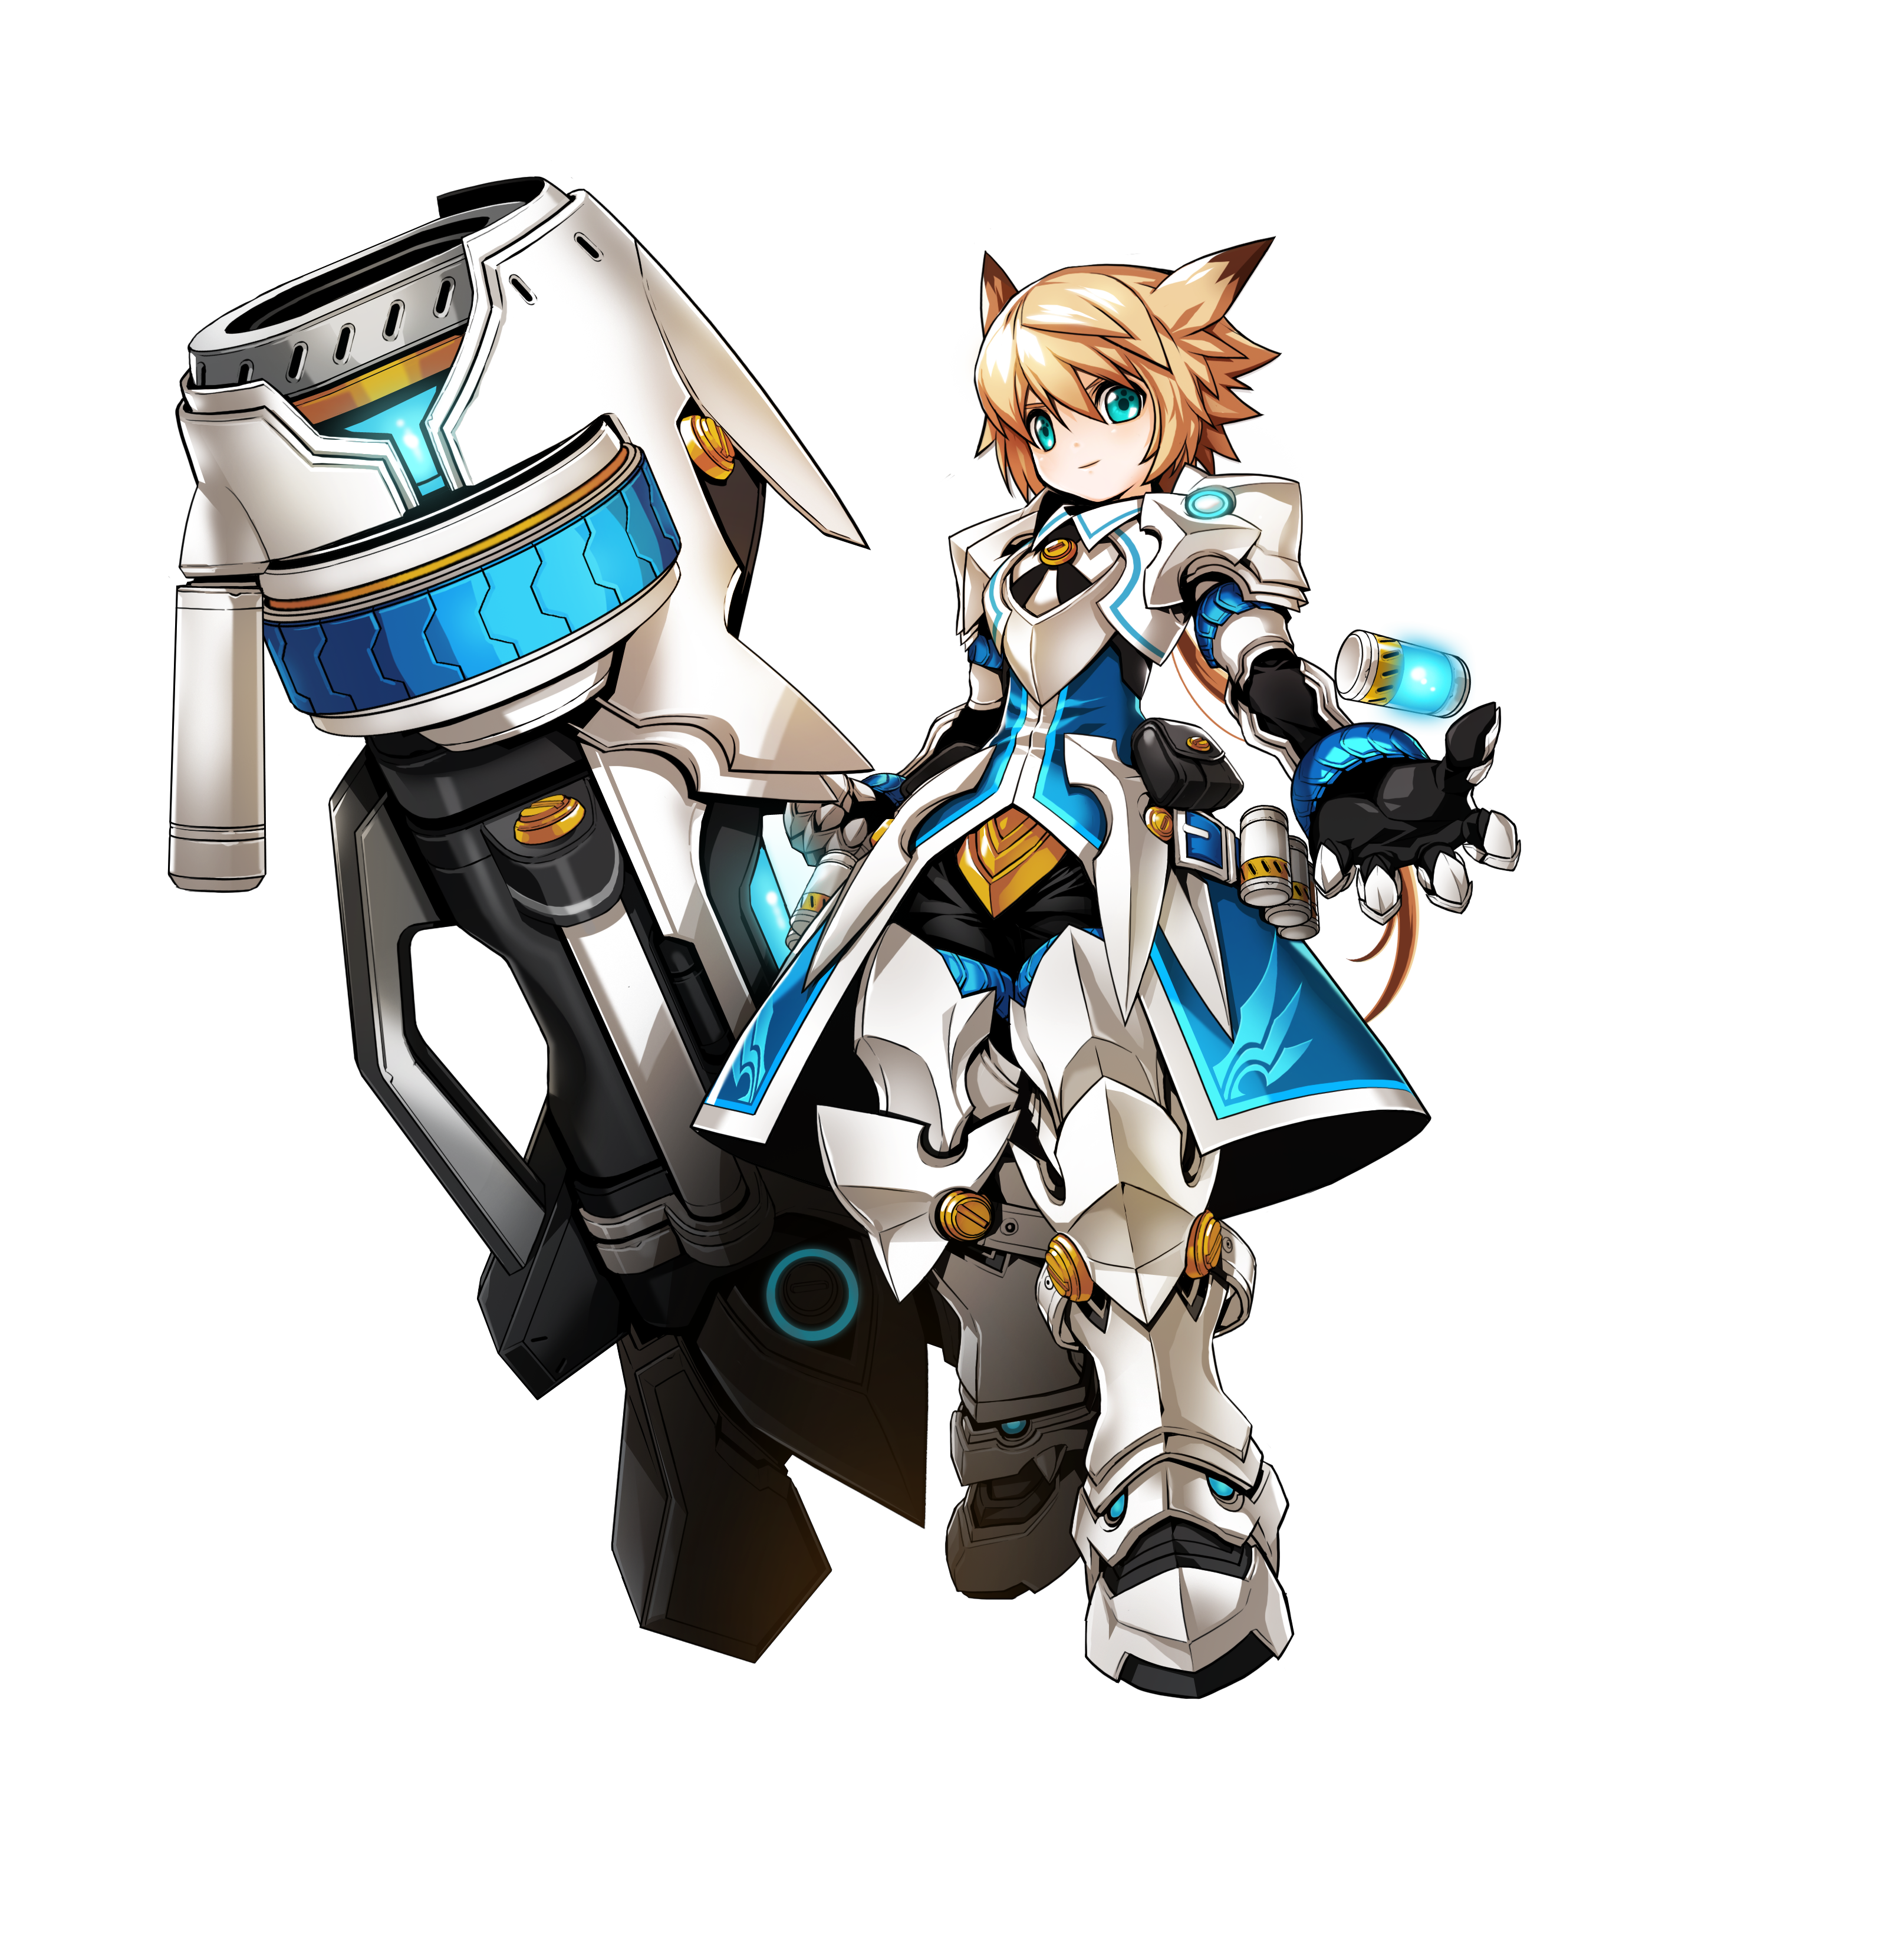 Elsword Is Going To Be Launched In The UK On 17th July